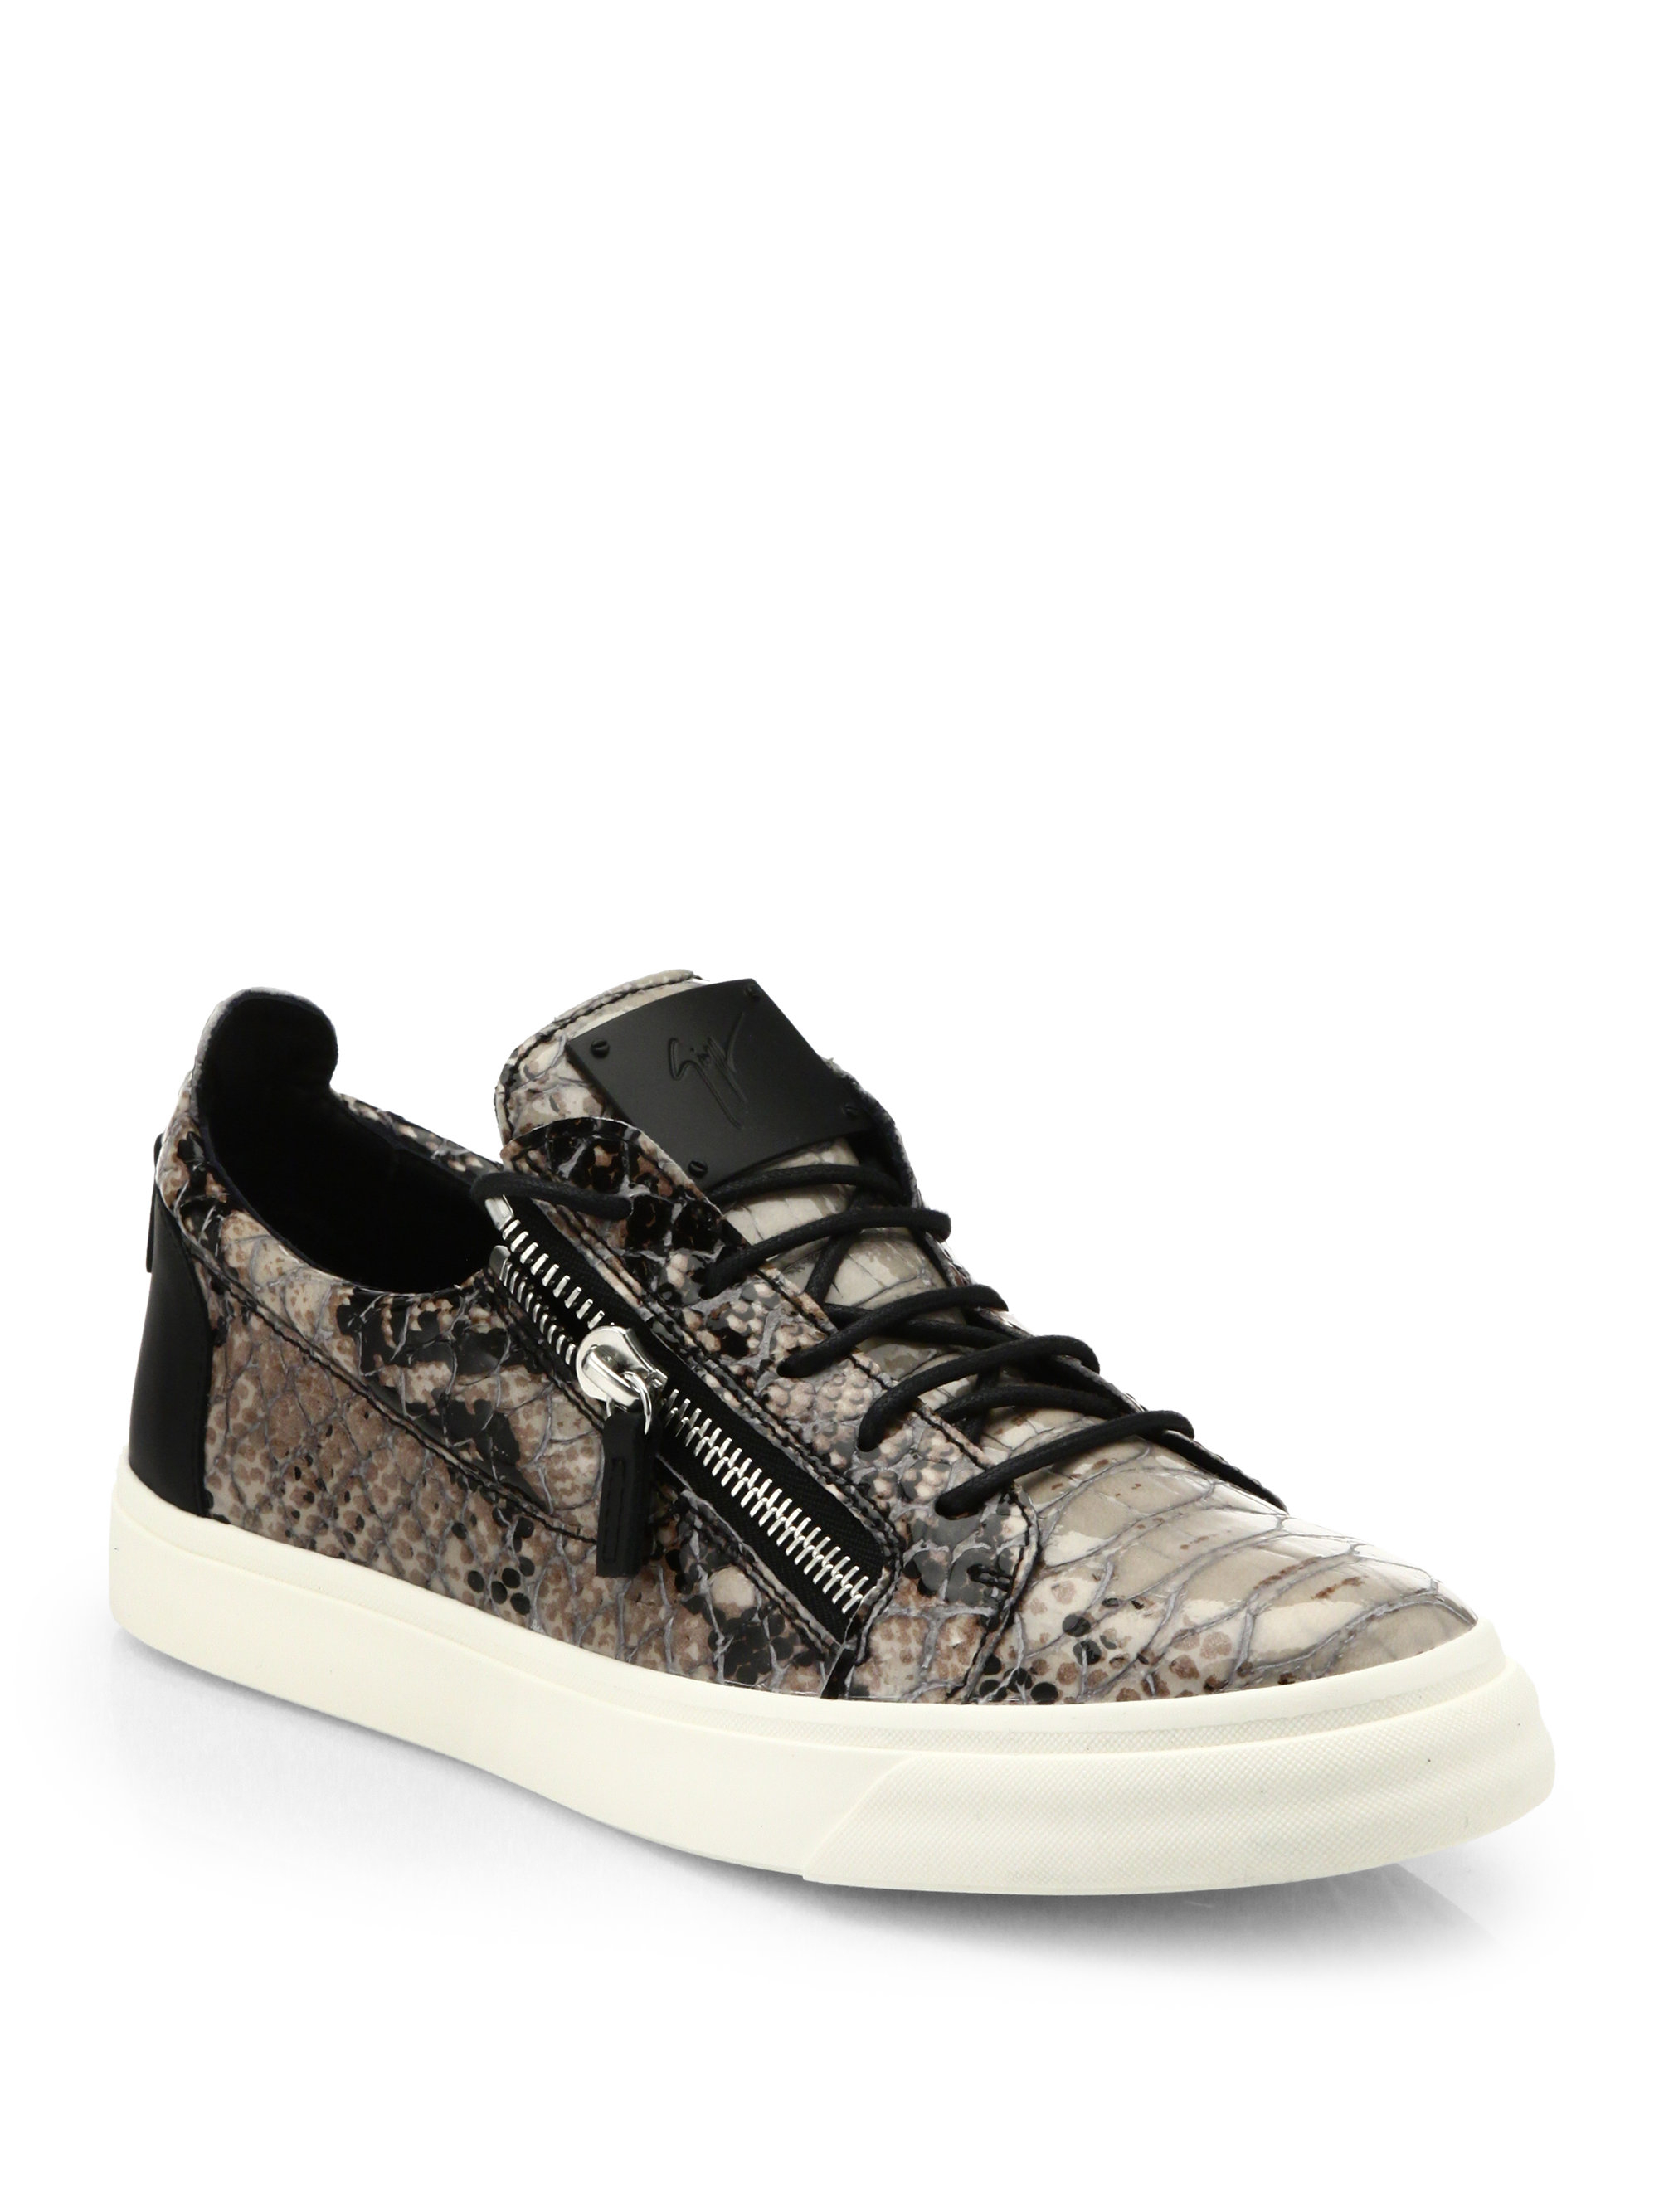 Giuseppe zanotti Devon Snake-Effect Leather Sneakers in ...